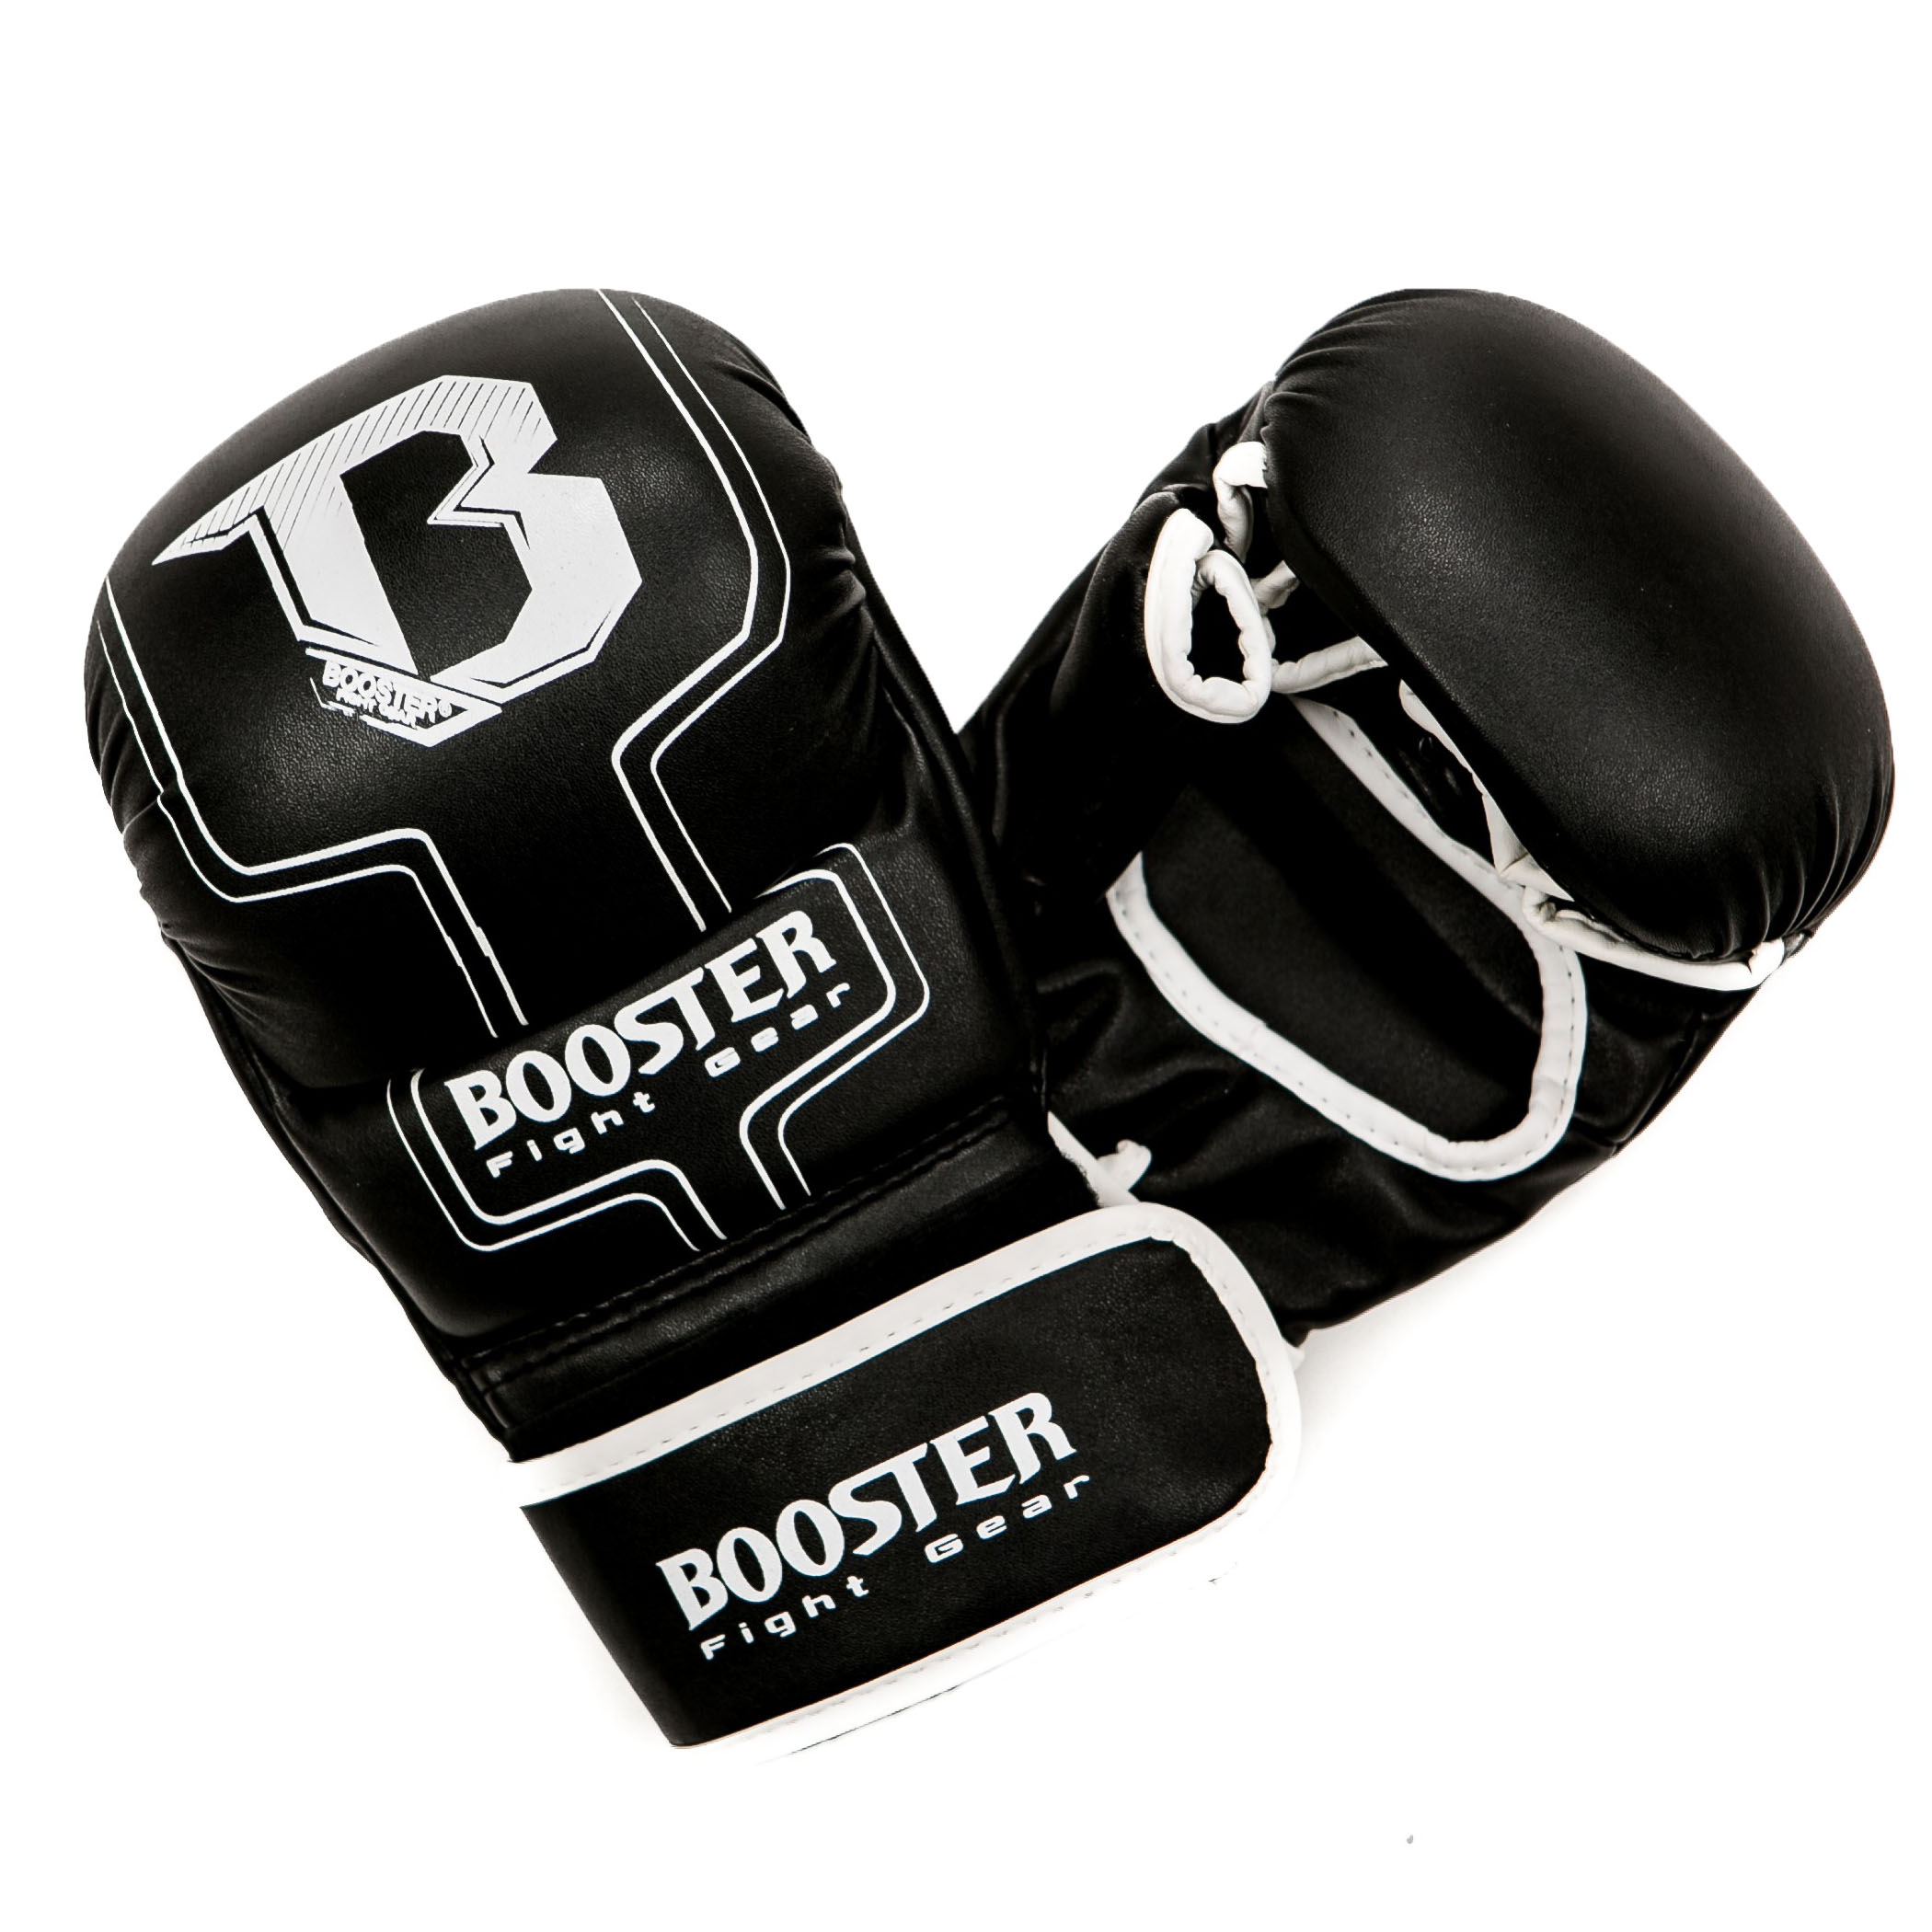 Booster MMA gloves (BFF-8)